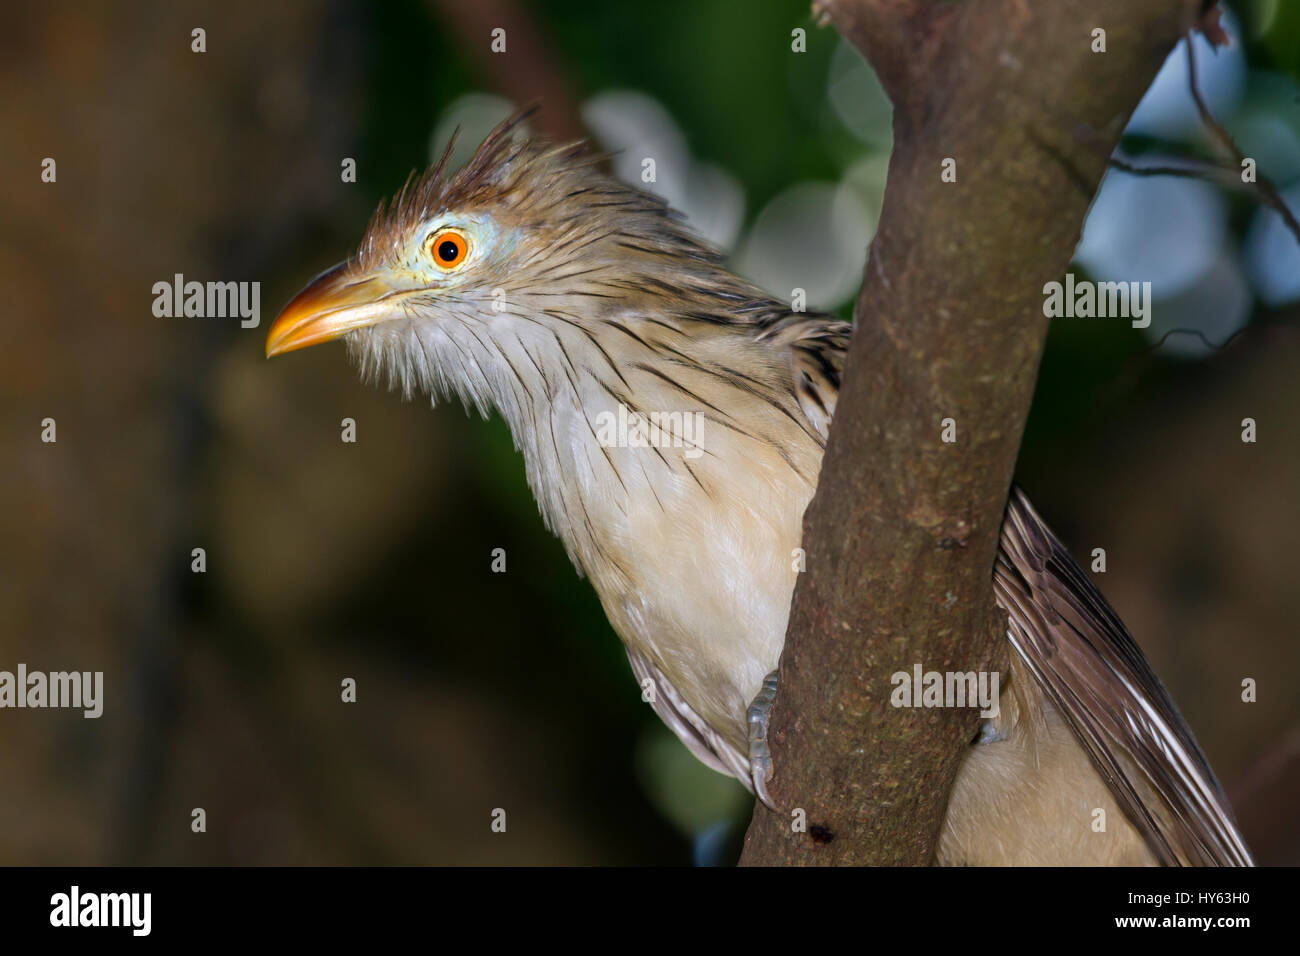 Two Guira Cuckoos (Guira guira) perched in foliage - Stock Image